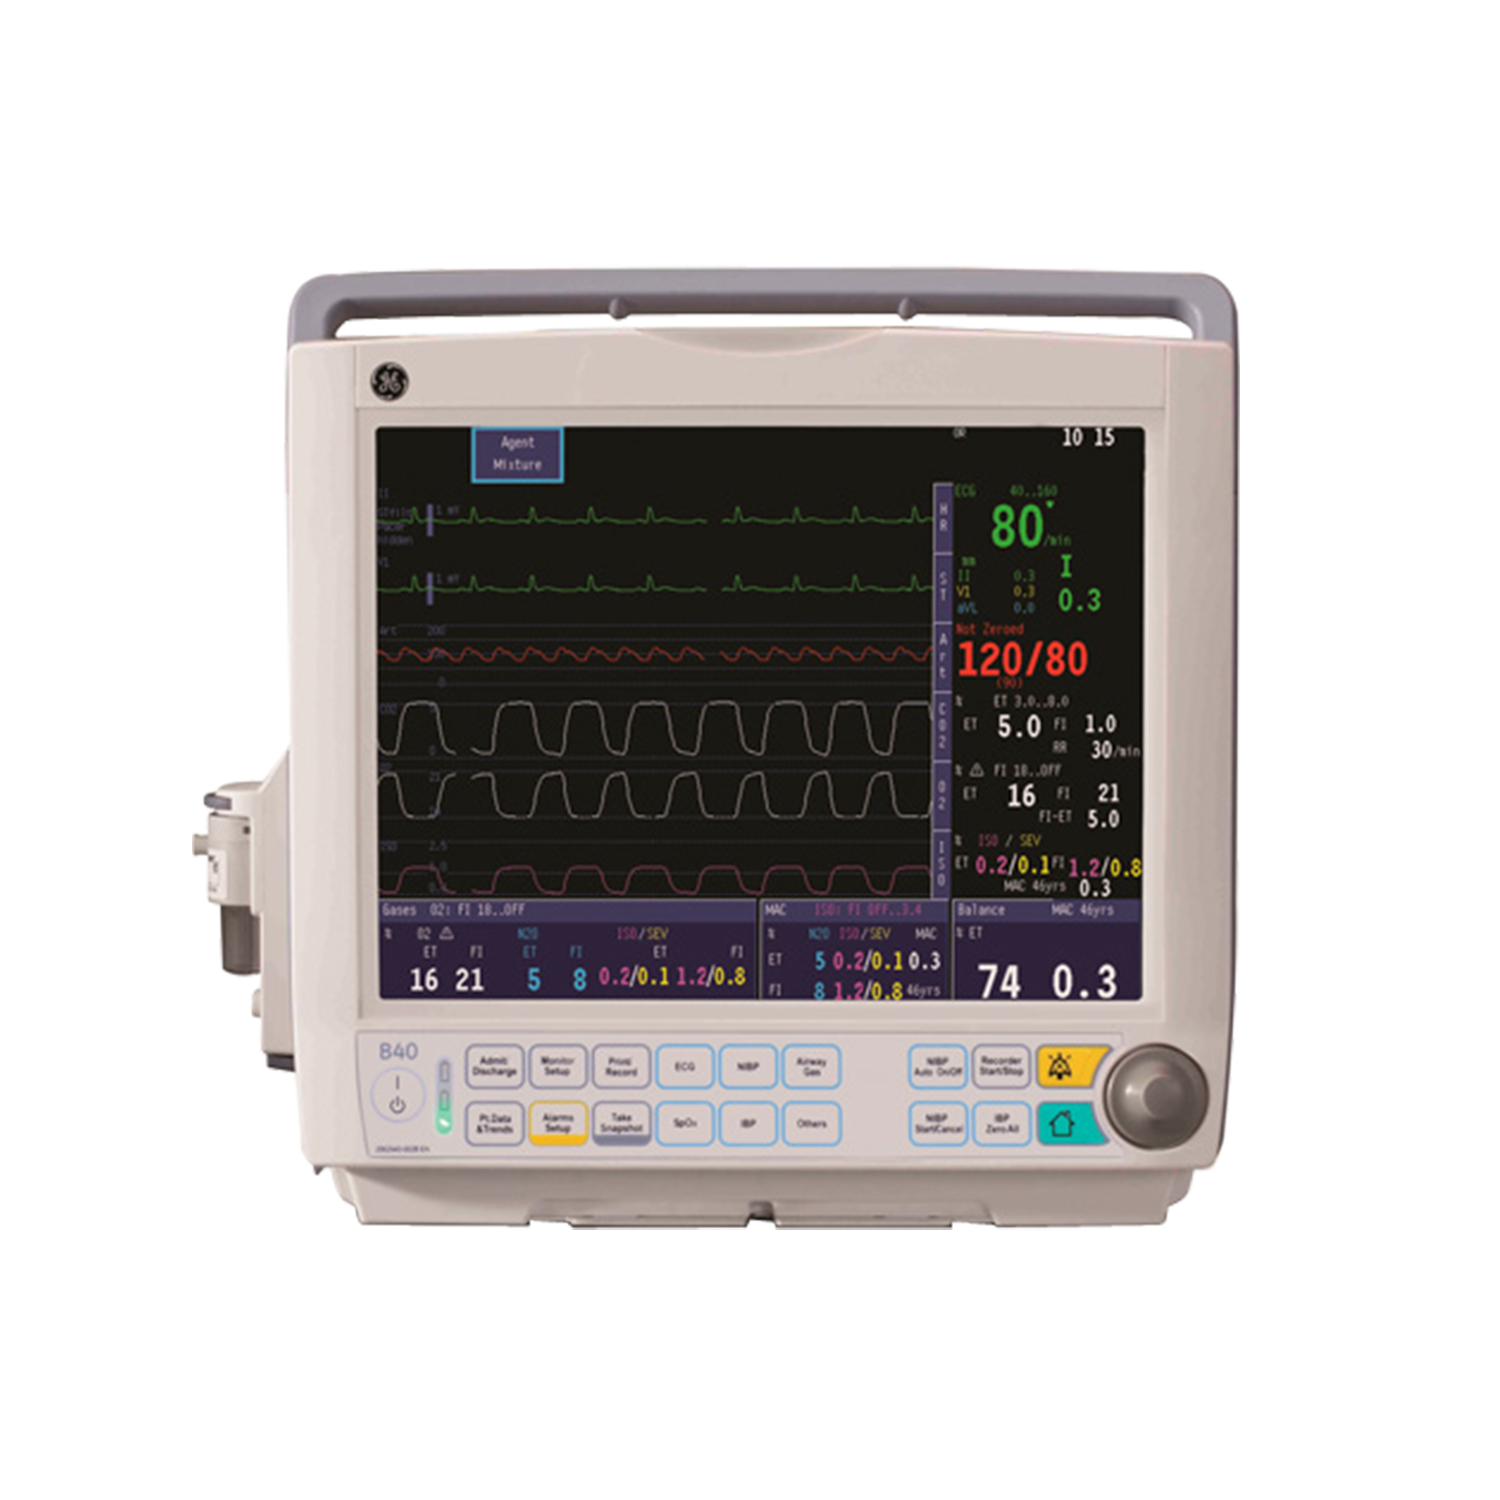 GE Procare B40 Patient Monitor